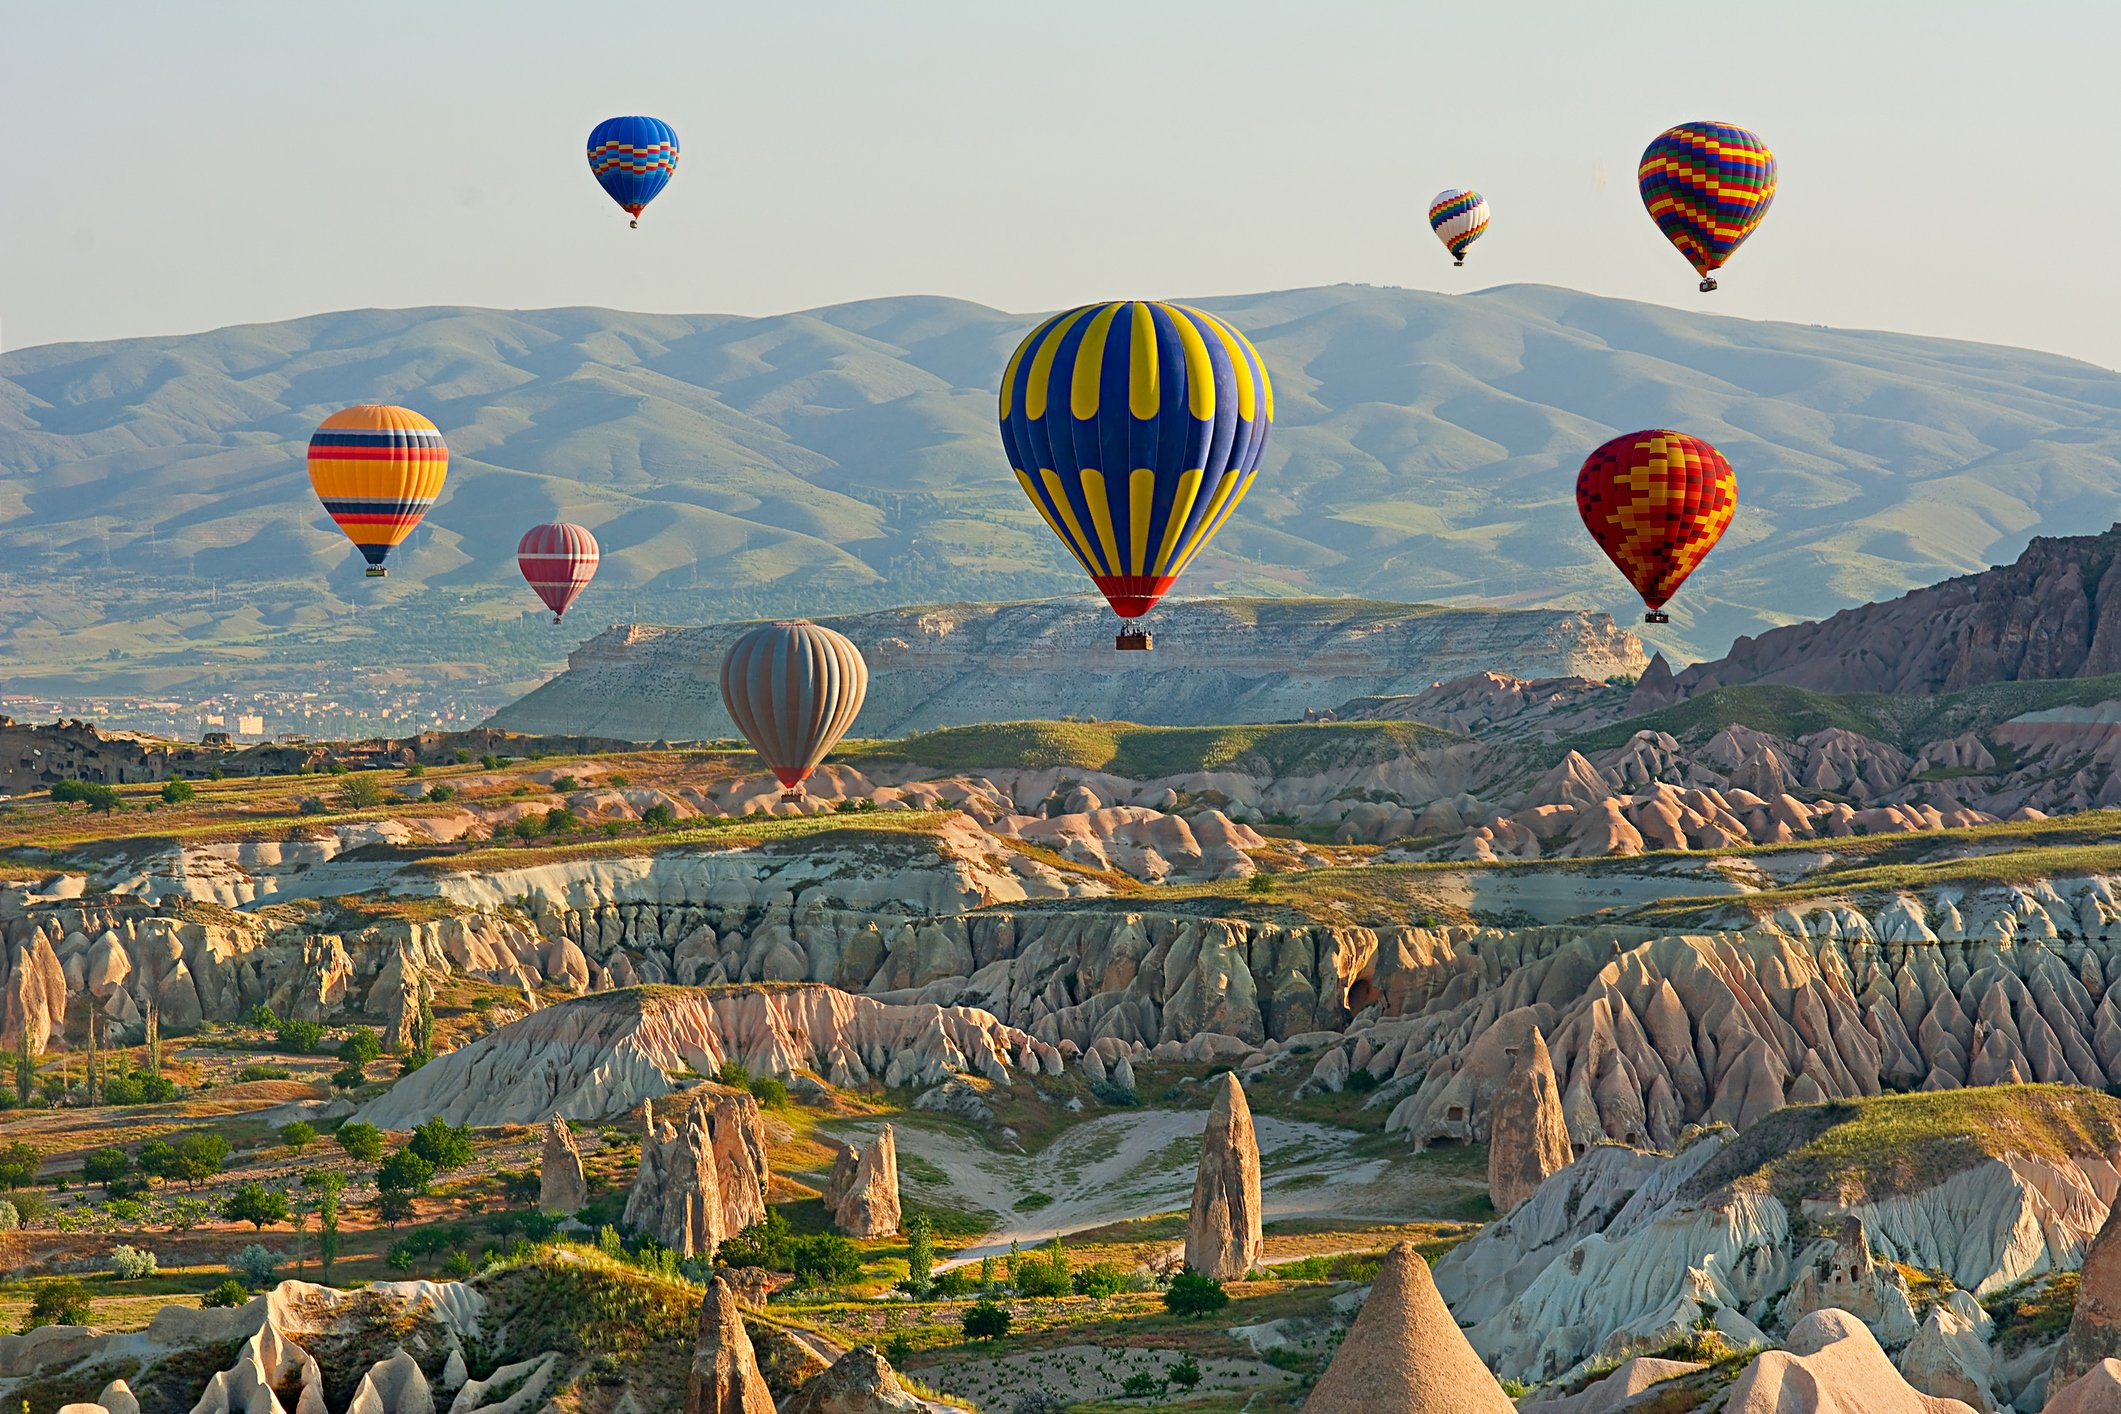 A hot air balloon ride will give you the opportunity to look at the fairy chimneys from a breathtaking angle. (iStock Photo)